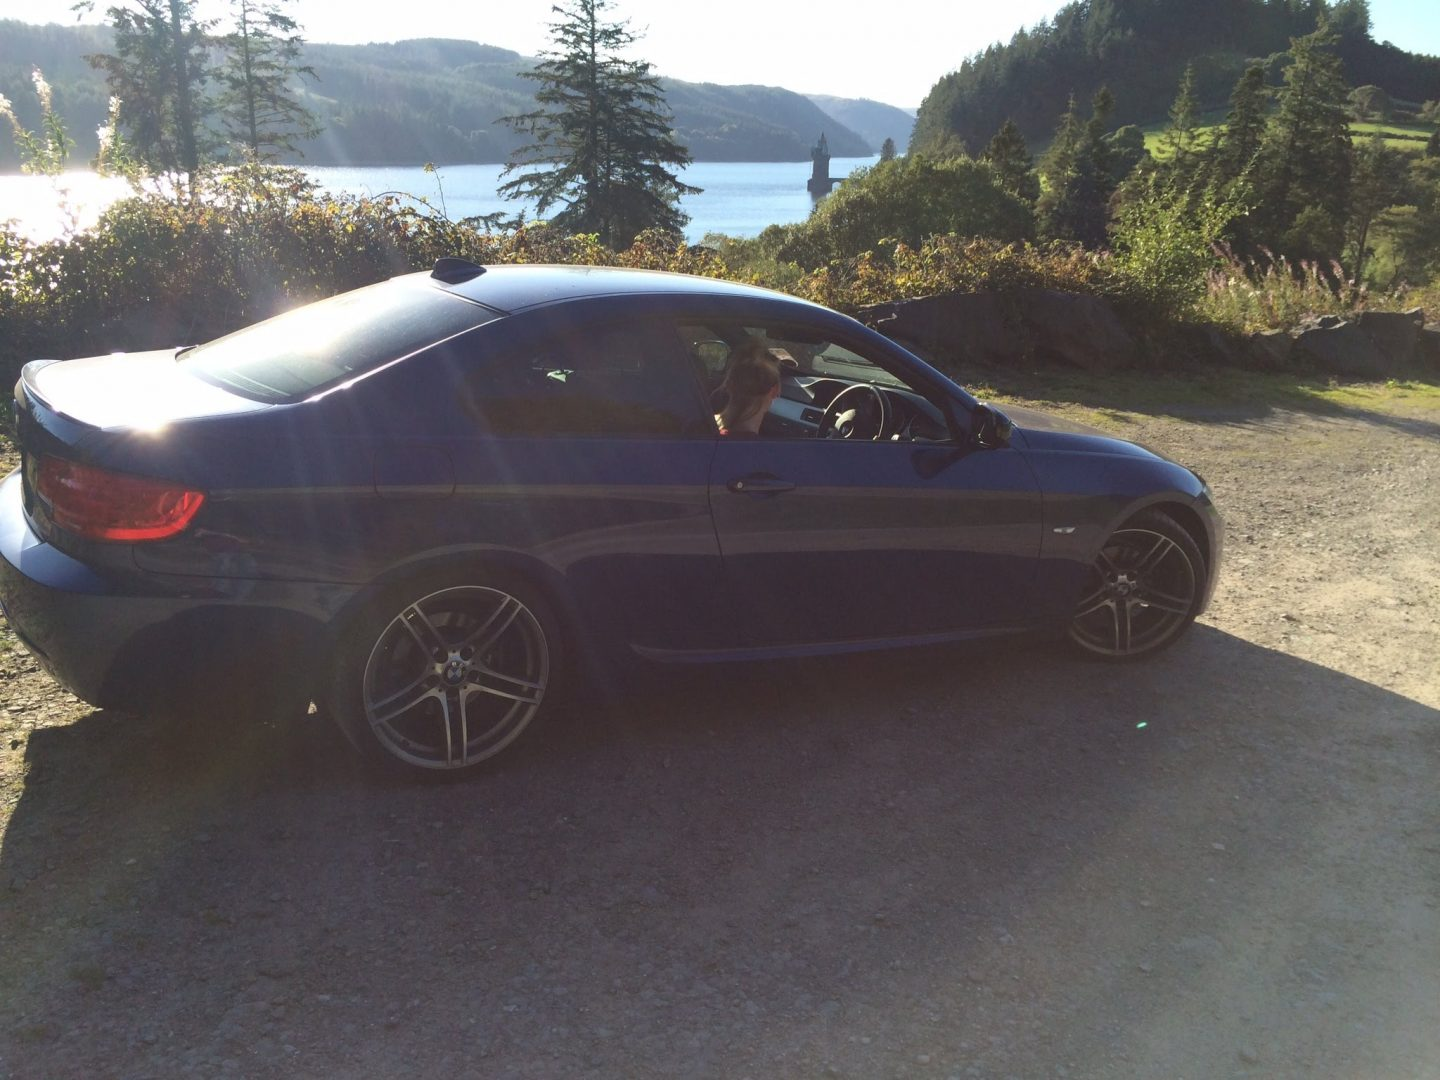 Driving the BMW in Wales